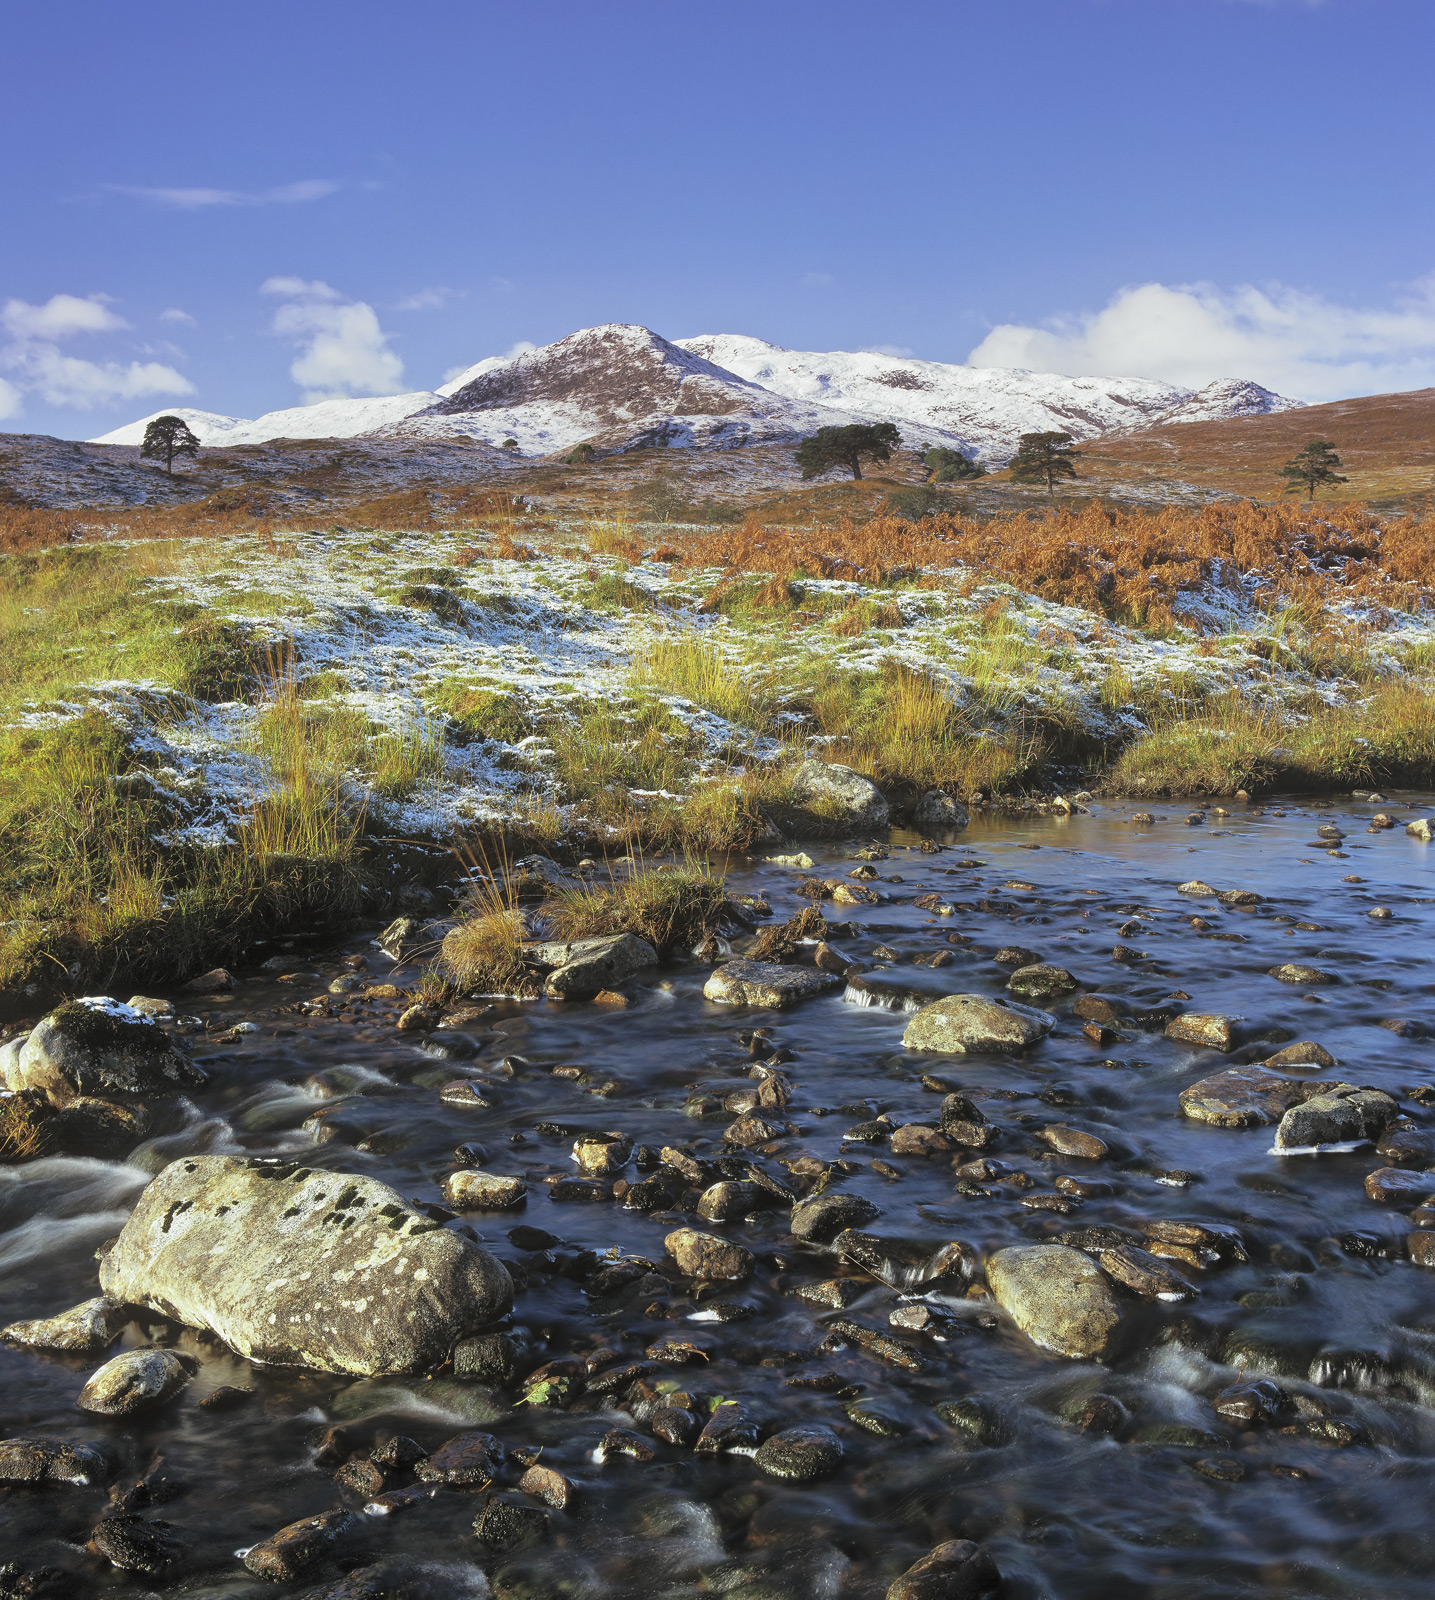 Glen Strathfarrar, Strathfarrar, Highland, Scotland, glen, beautiful, winter, autumn, river, scots pine, stones, sumptuo, photo